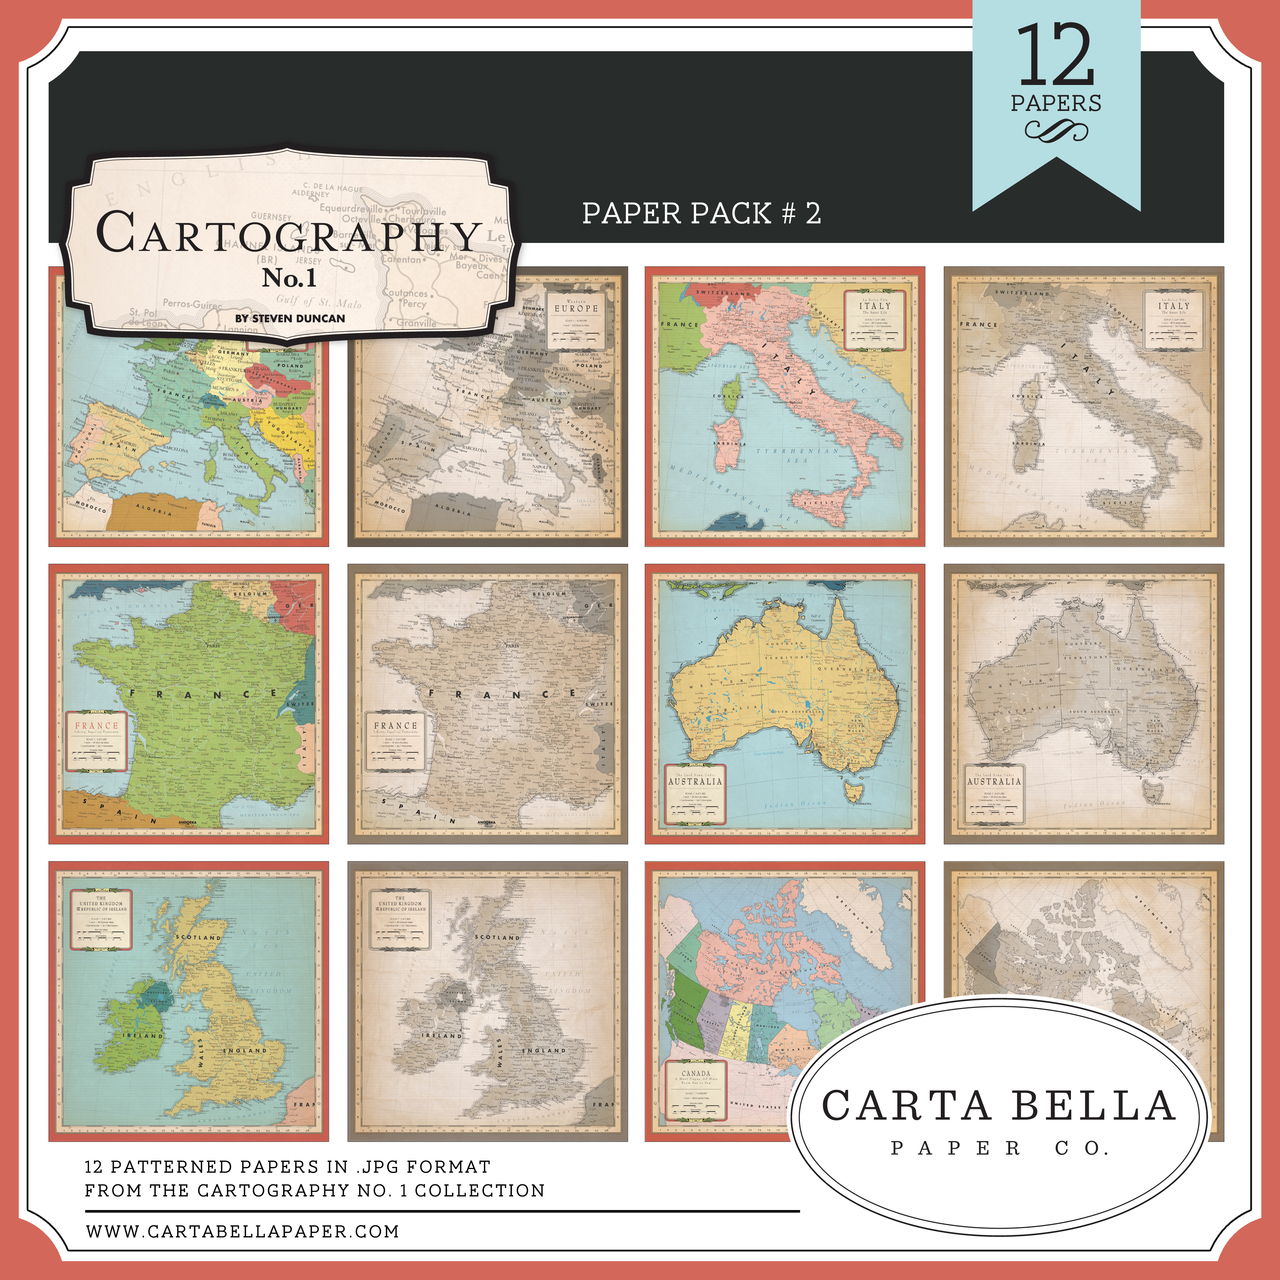 Cartography No. 1 Paper Pack #2